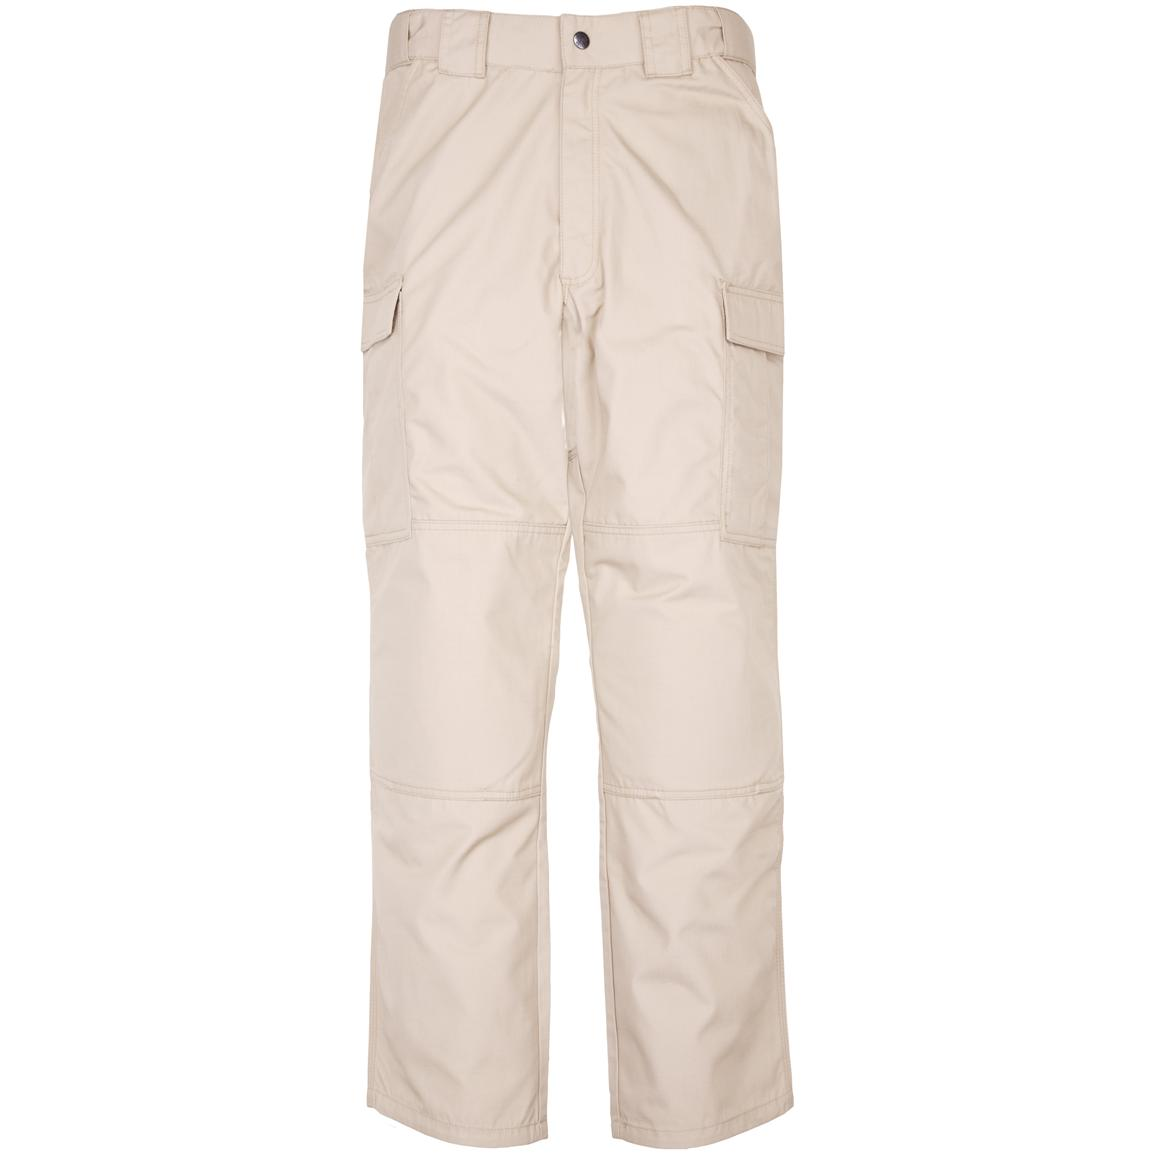 Men's 5.11 Tactical® Ripstop TDU® Pants, TDU Khaki